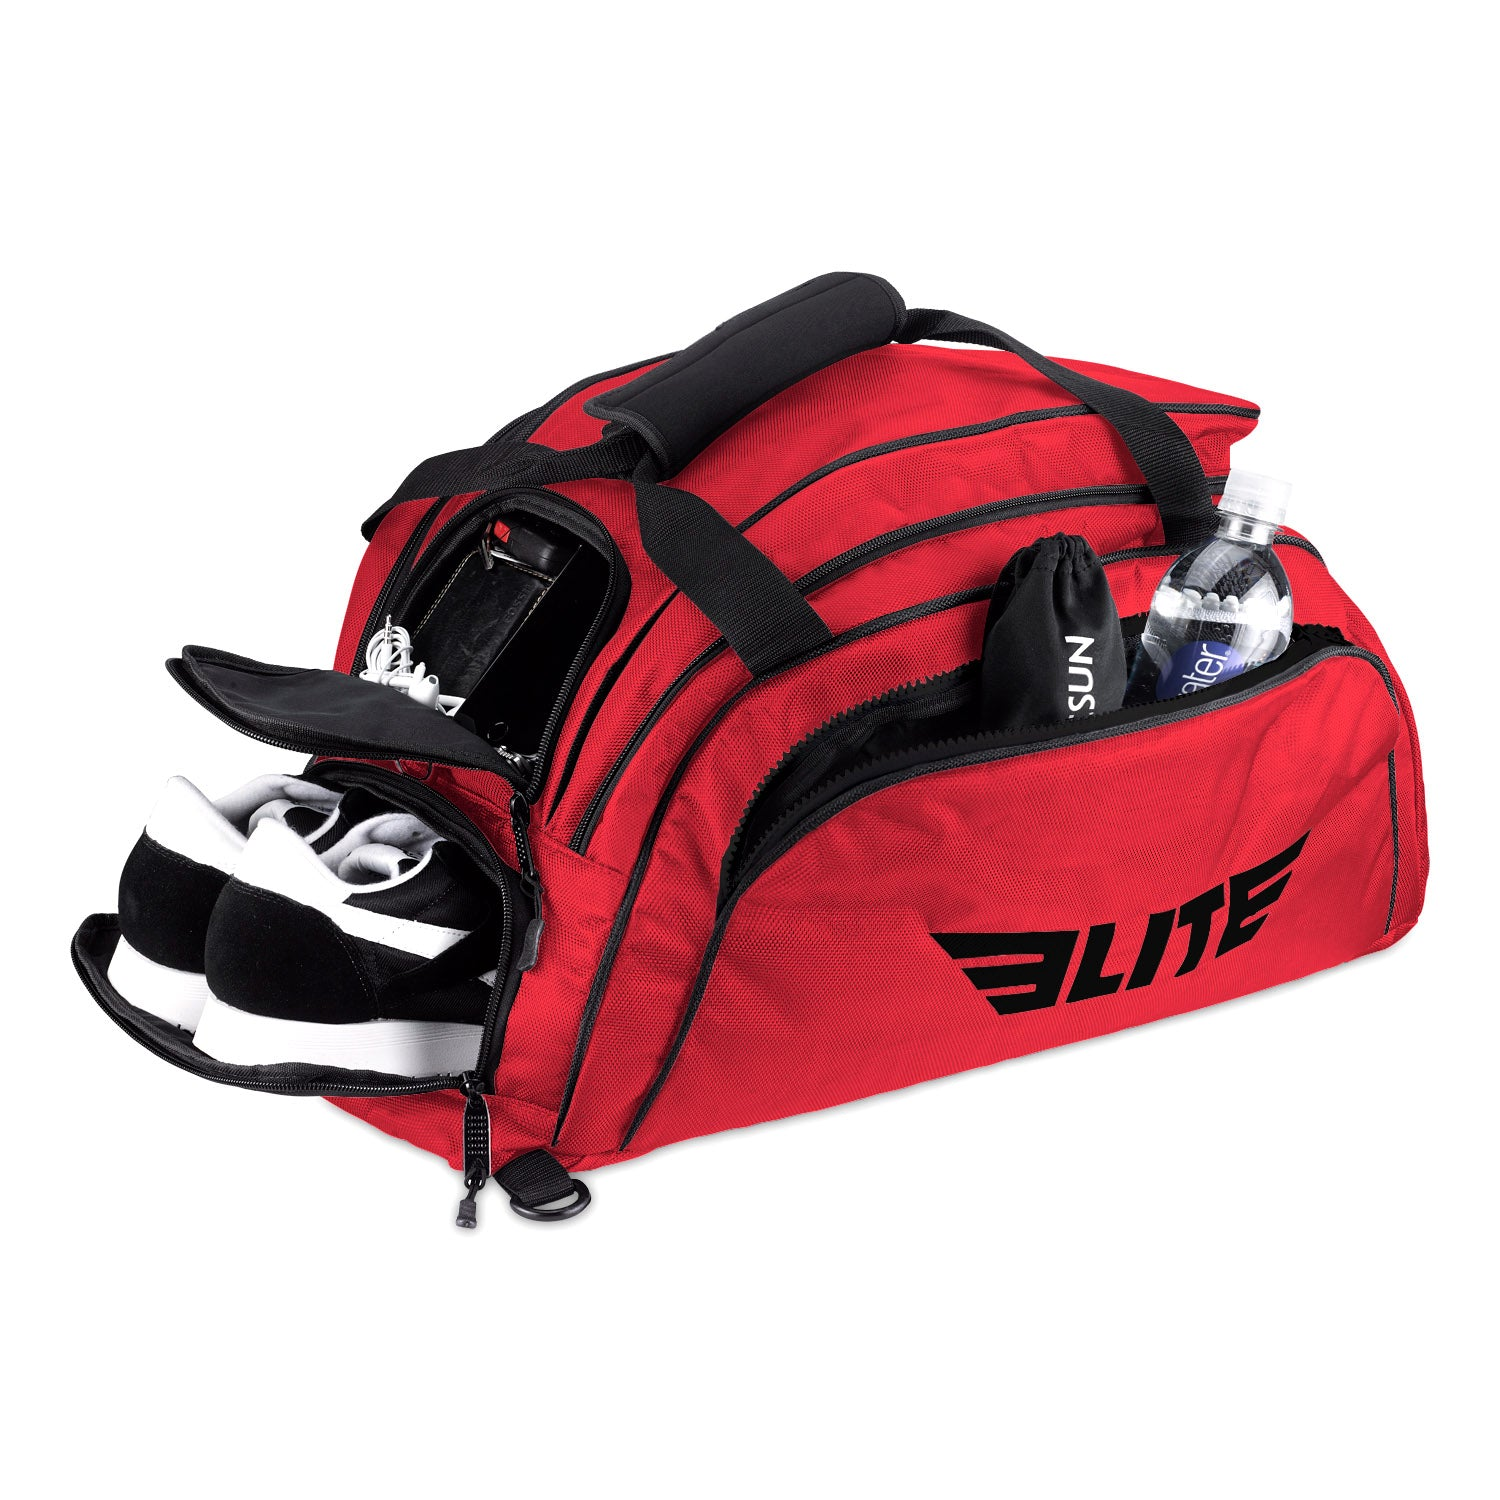 Load image into Gallery viewer, Elite Sports Warrior Series Red Medium Duffel Boxing Gear Gym Bag & Backpack